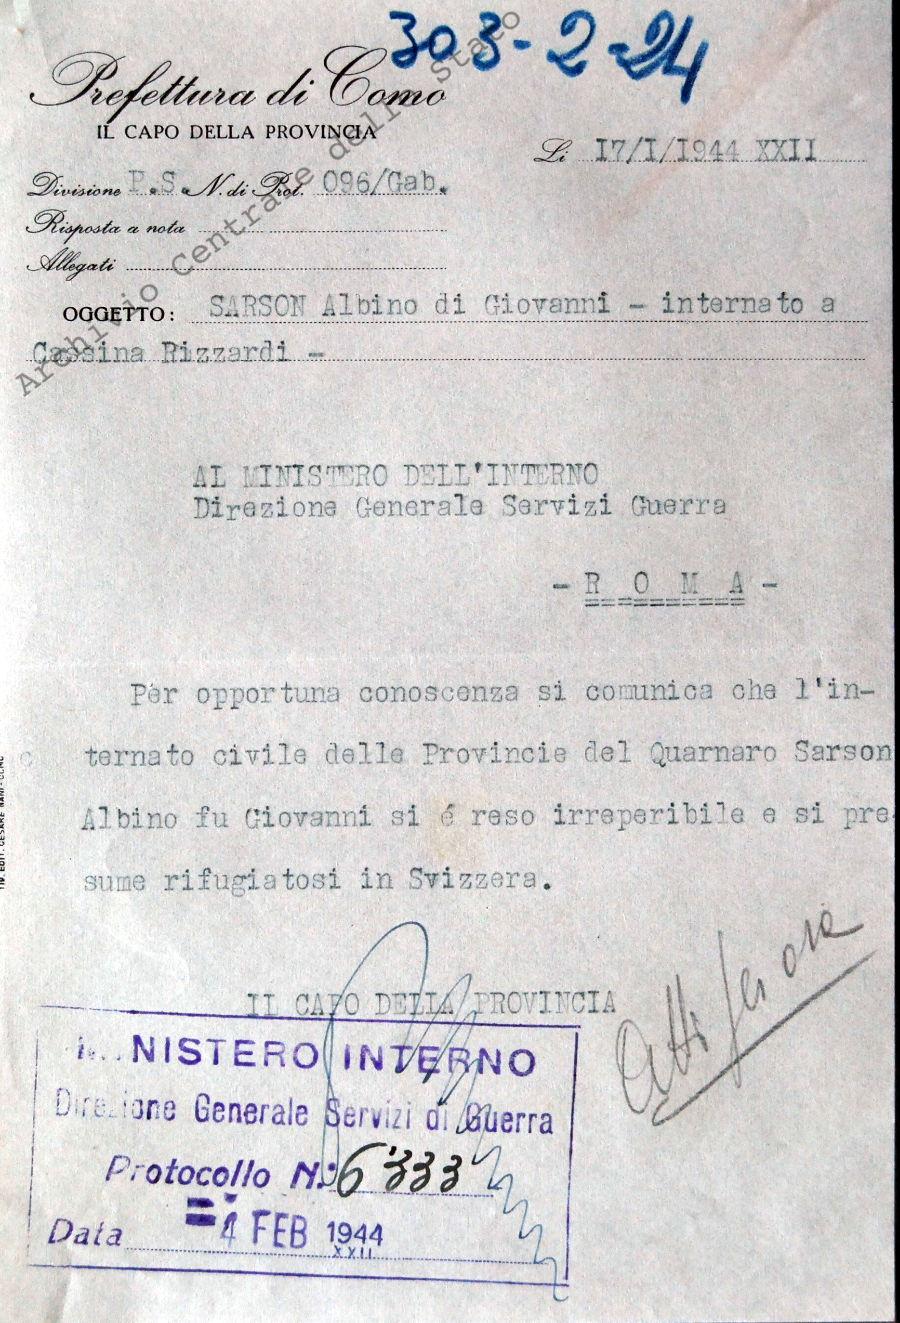 Sarson Albino di Giovanni. Internato a Cassina Rizzardi